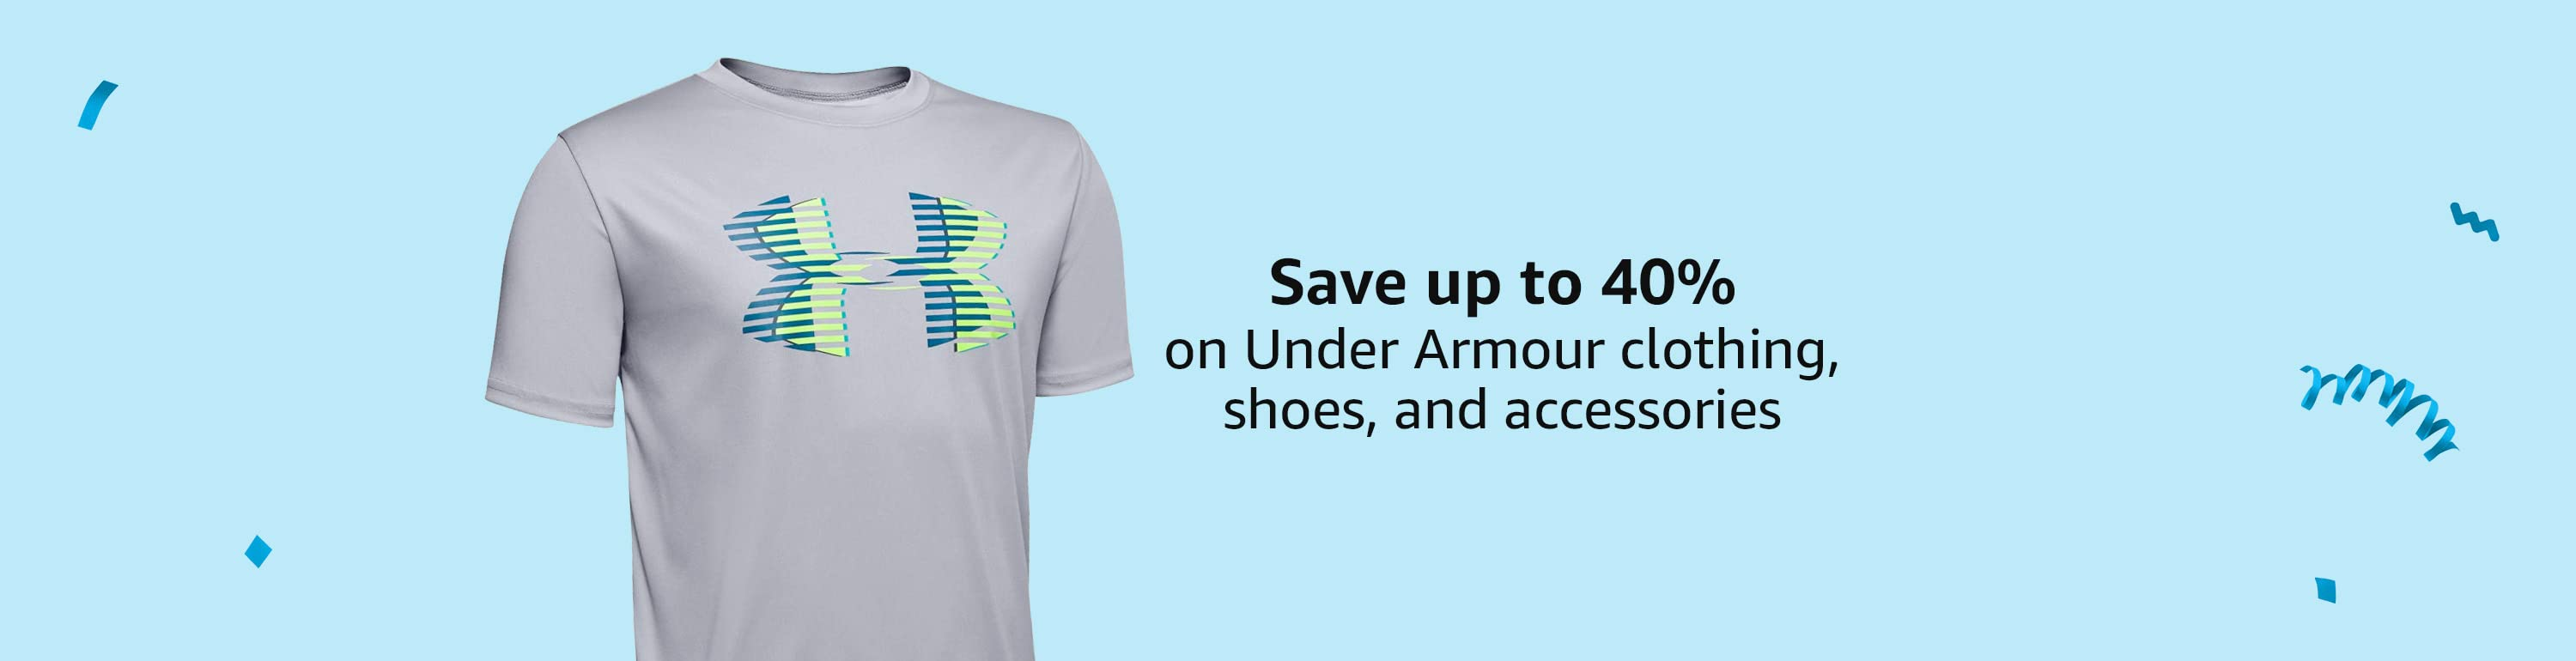 Save up to 40% on Under Armour clothing, shoes, and accessories